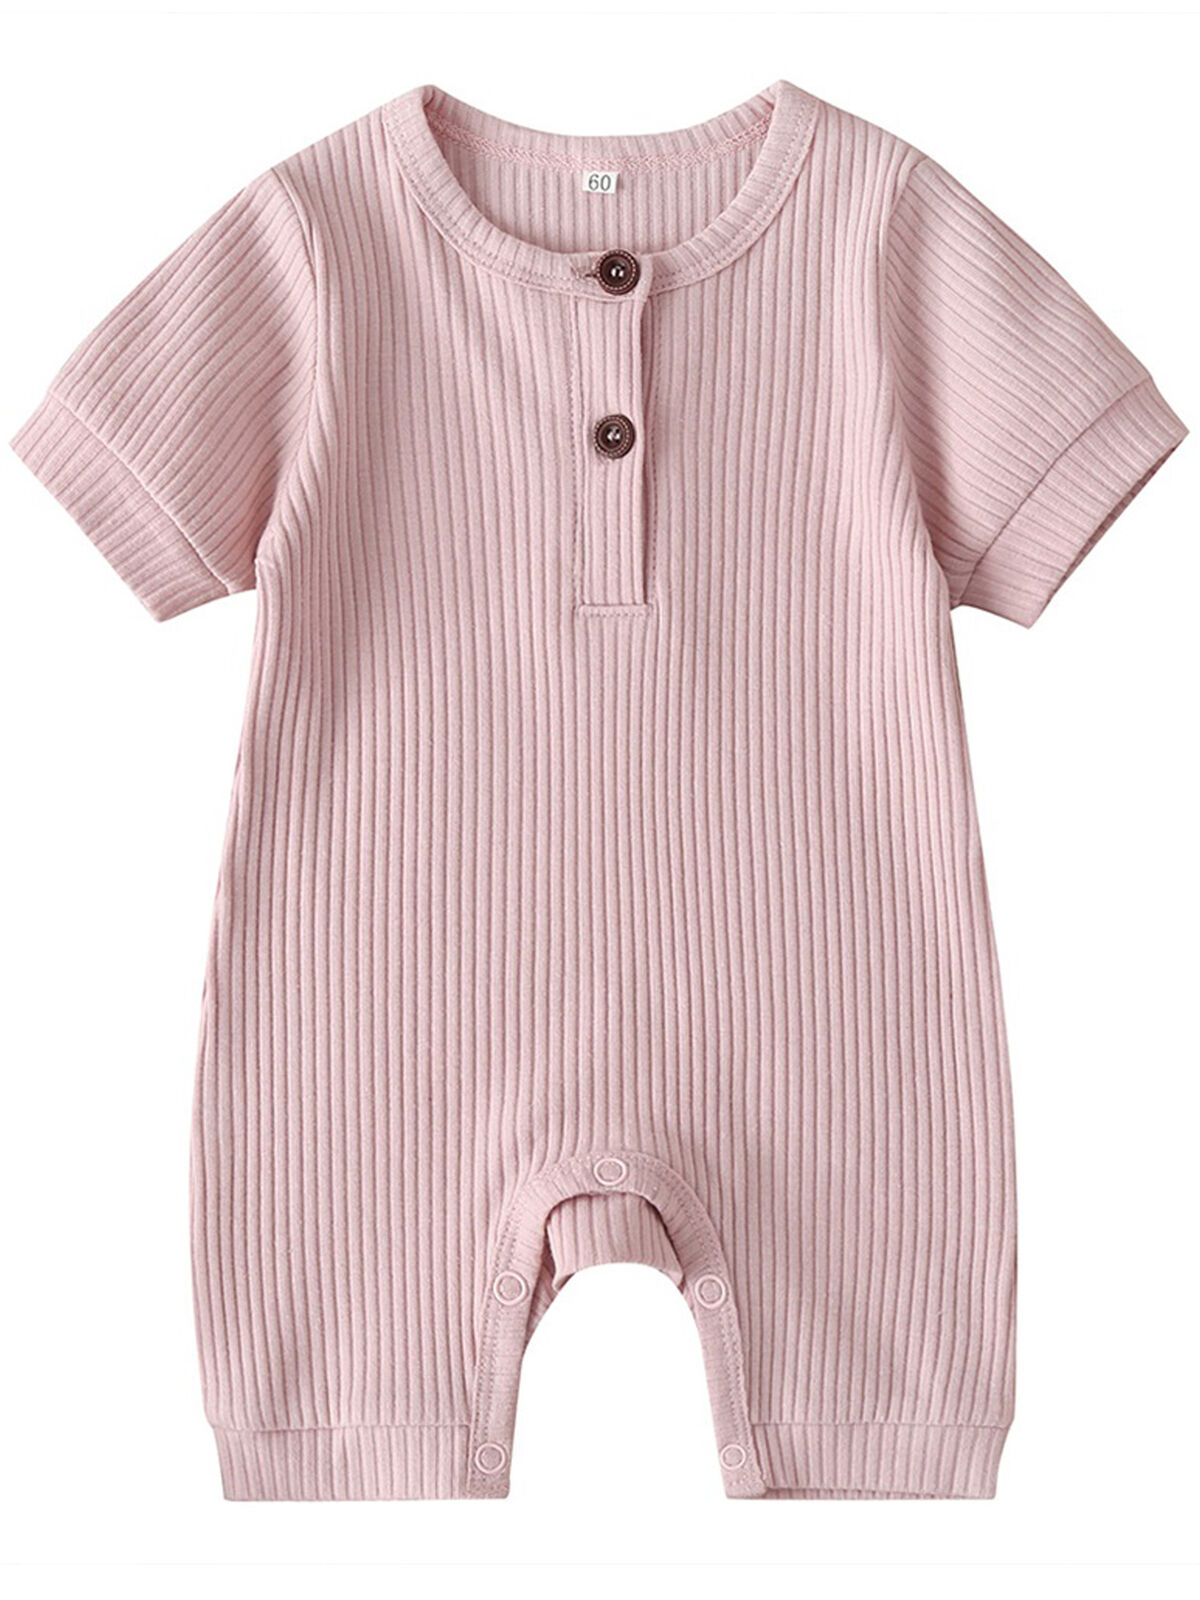 YOUNGER TREE Infant Toddler Baby Girl Boy Summer Solid Romper Cotton Jumpsuit Basic Short Romper Pink Blue One-Piece Clothes